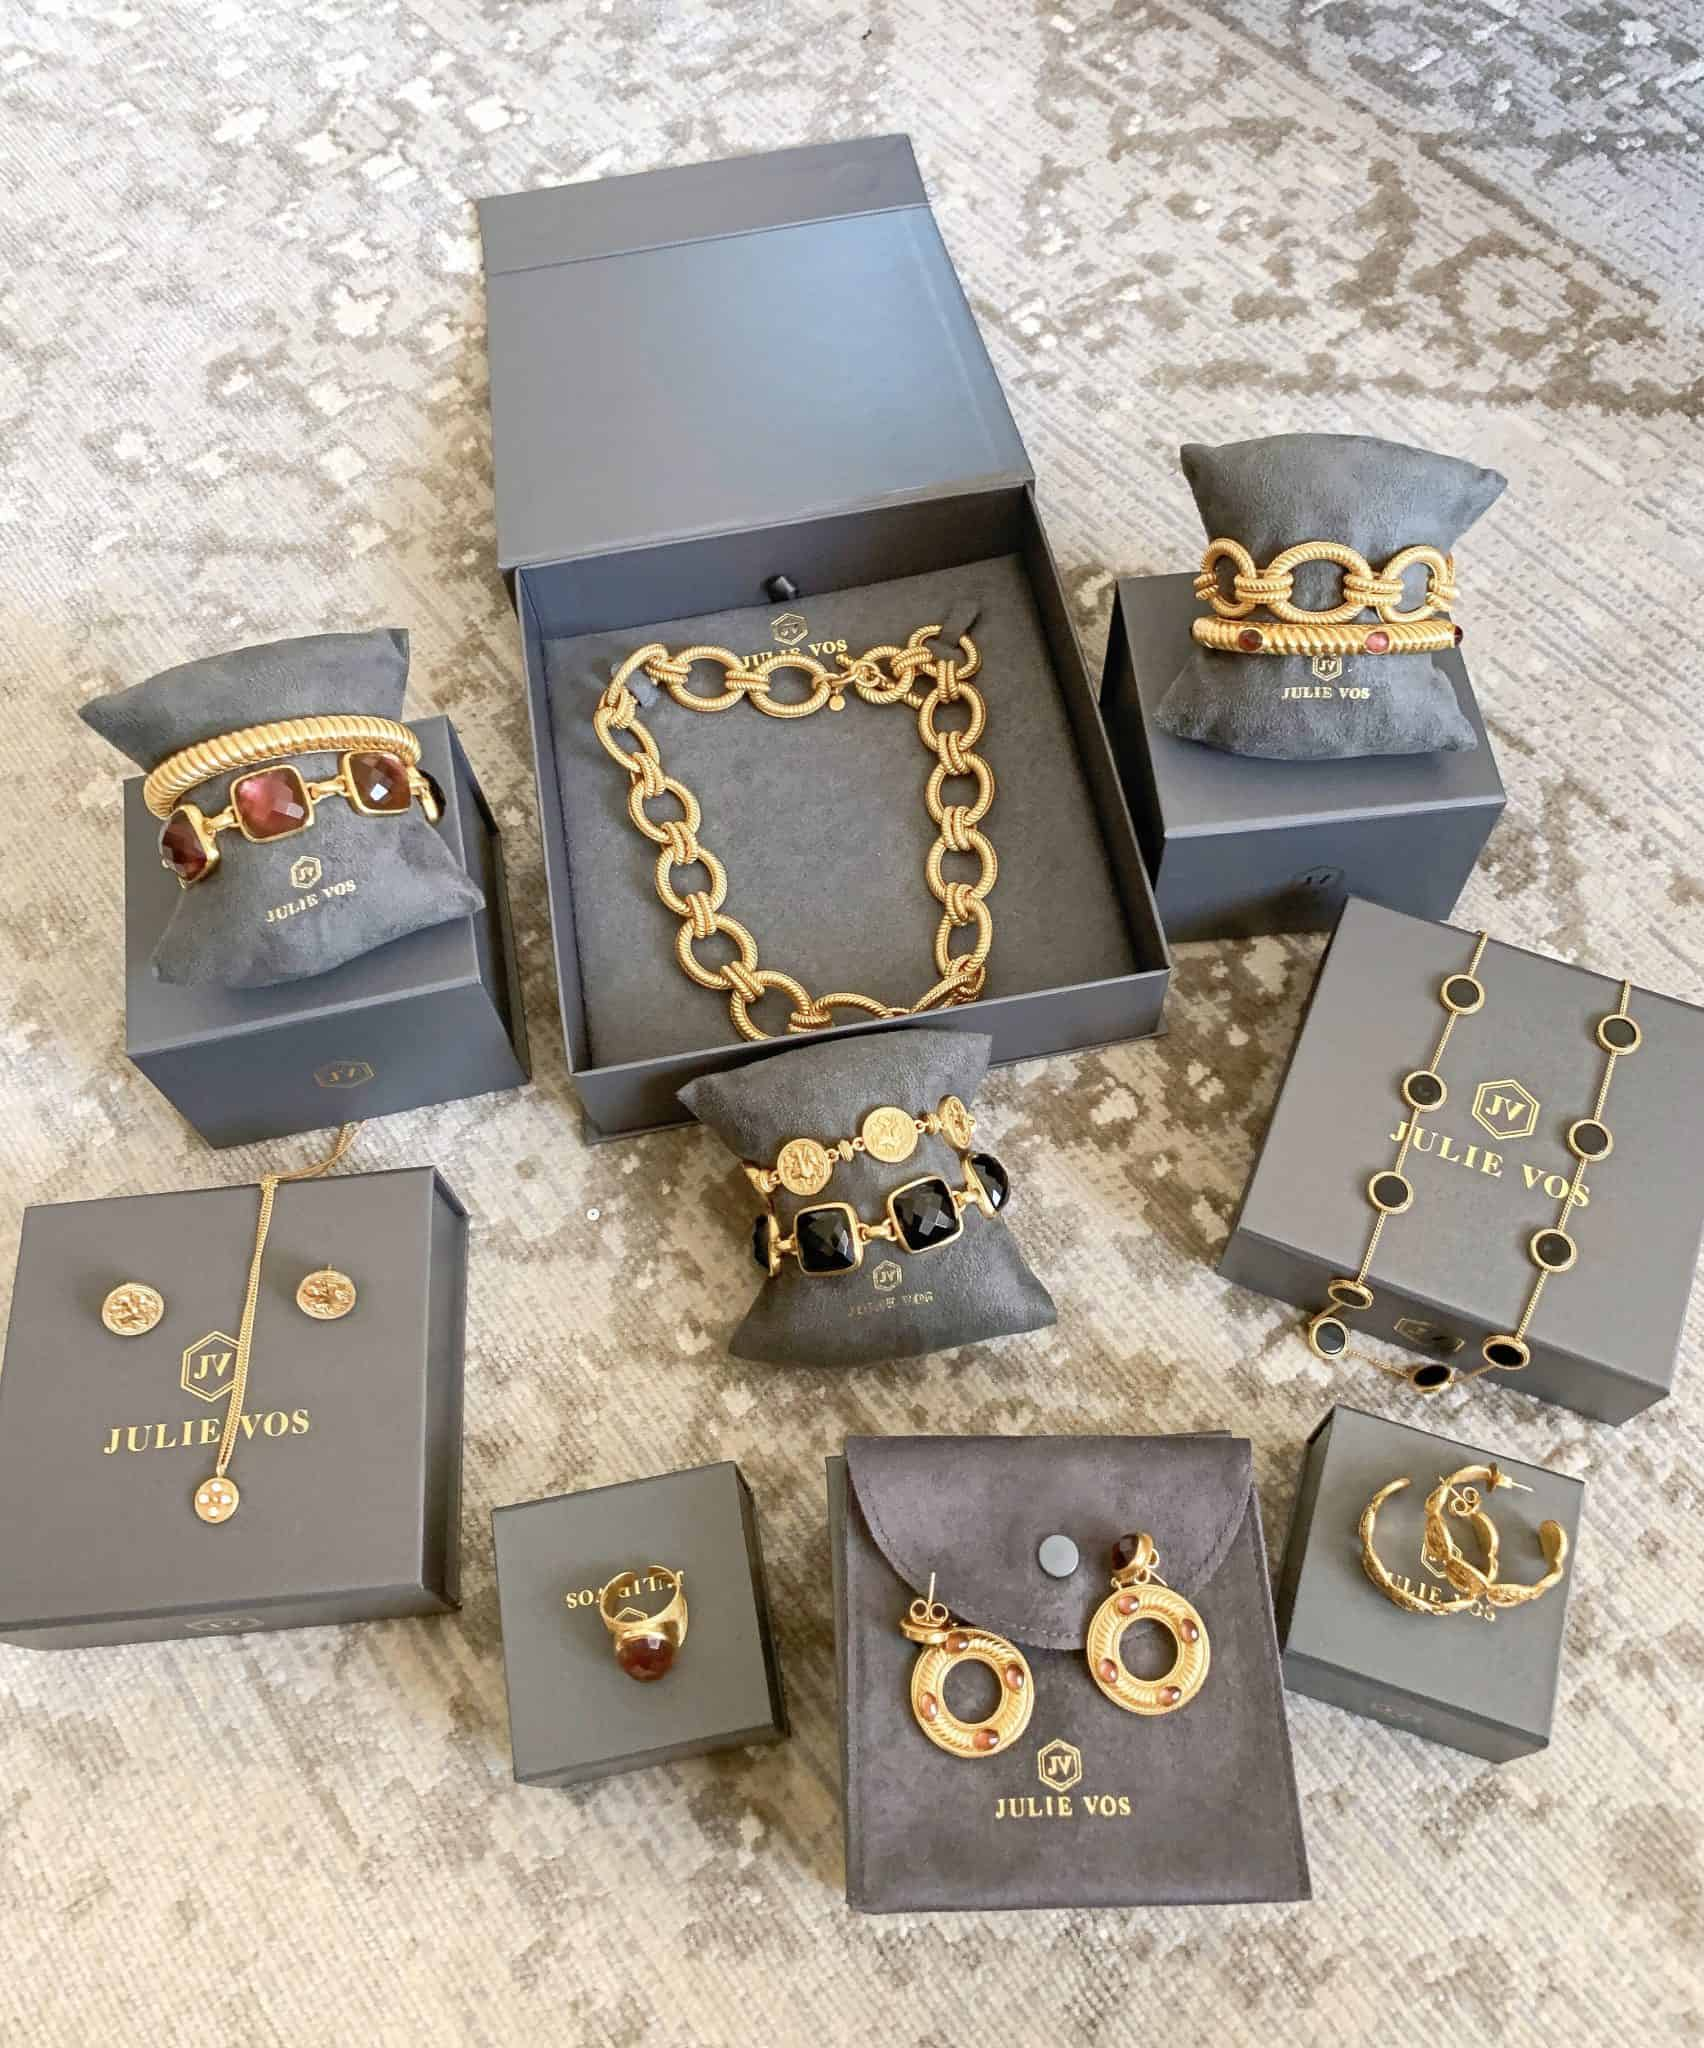 Julie Vos Jewelry Fall 2019 Collection by popular Dallas fashion blog, Glamorous Versatility: image of various Julie Vos jewelry pieces.